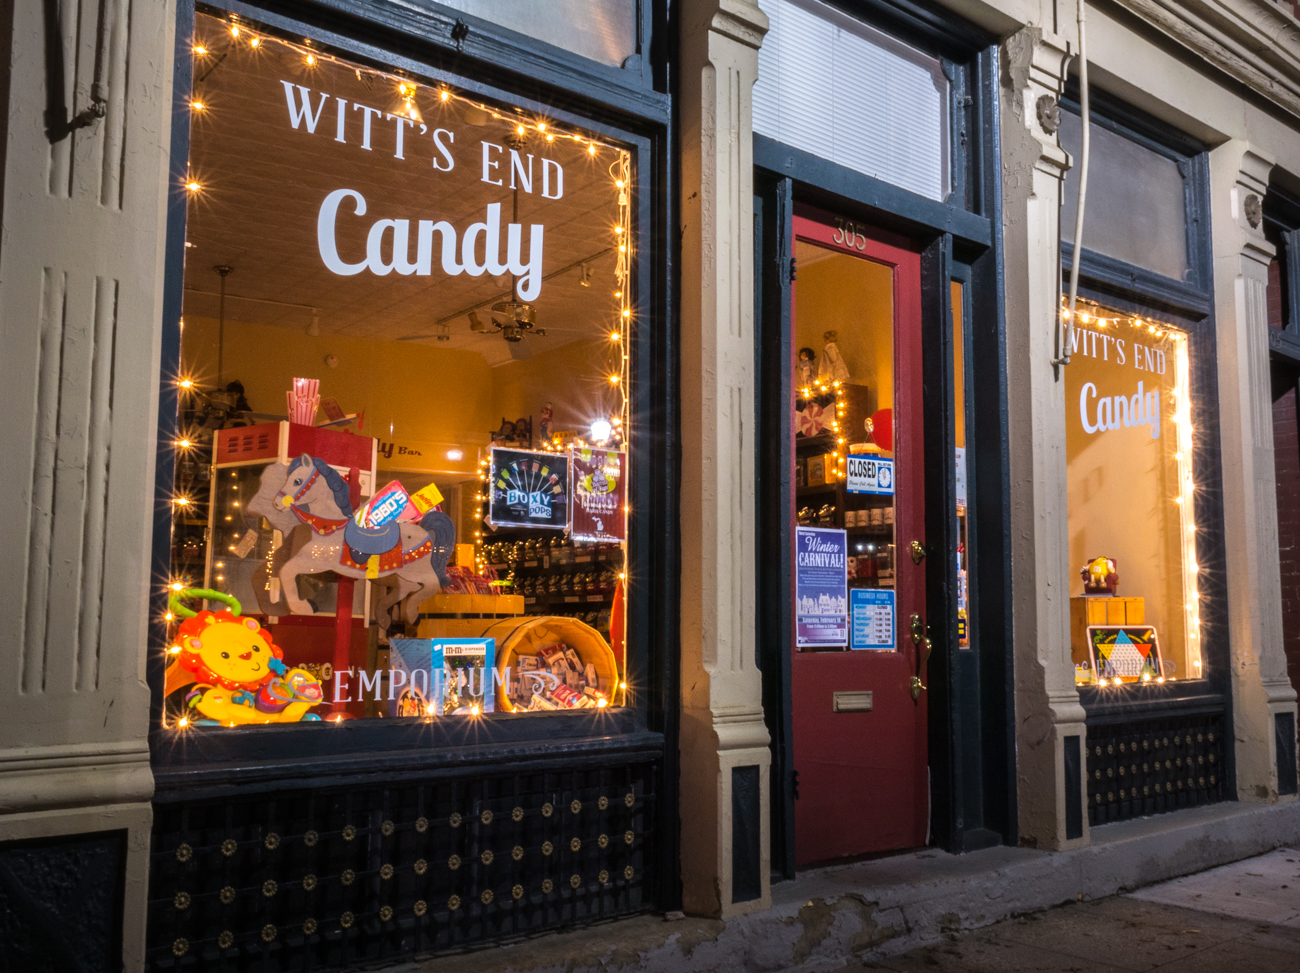 Witt's End Candy Emporium brings back the magic of old-timey candy shops with glass jars and barrels filled with treats. Pixie Stix, Moon Pies, gummy worms, saltwater taffy, and tons of others are available for purchase. ADDRESS: 305 Fairfield Ave., Bellevue, KY 41073 / Image: Phil Armstrong, Cincinnati Refined // Published: 2.17.17